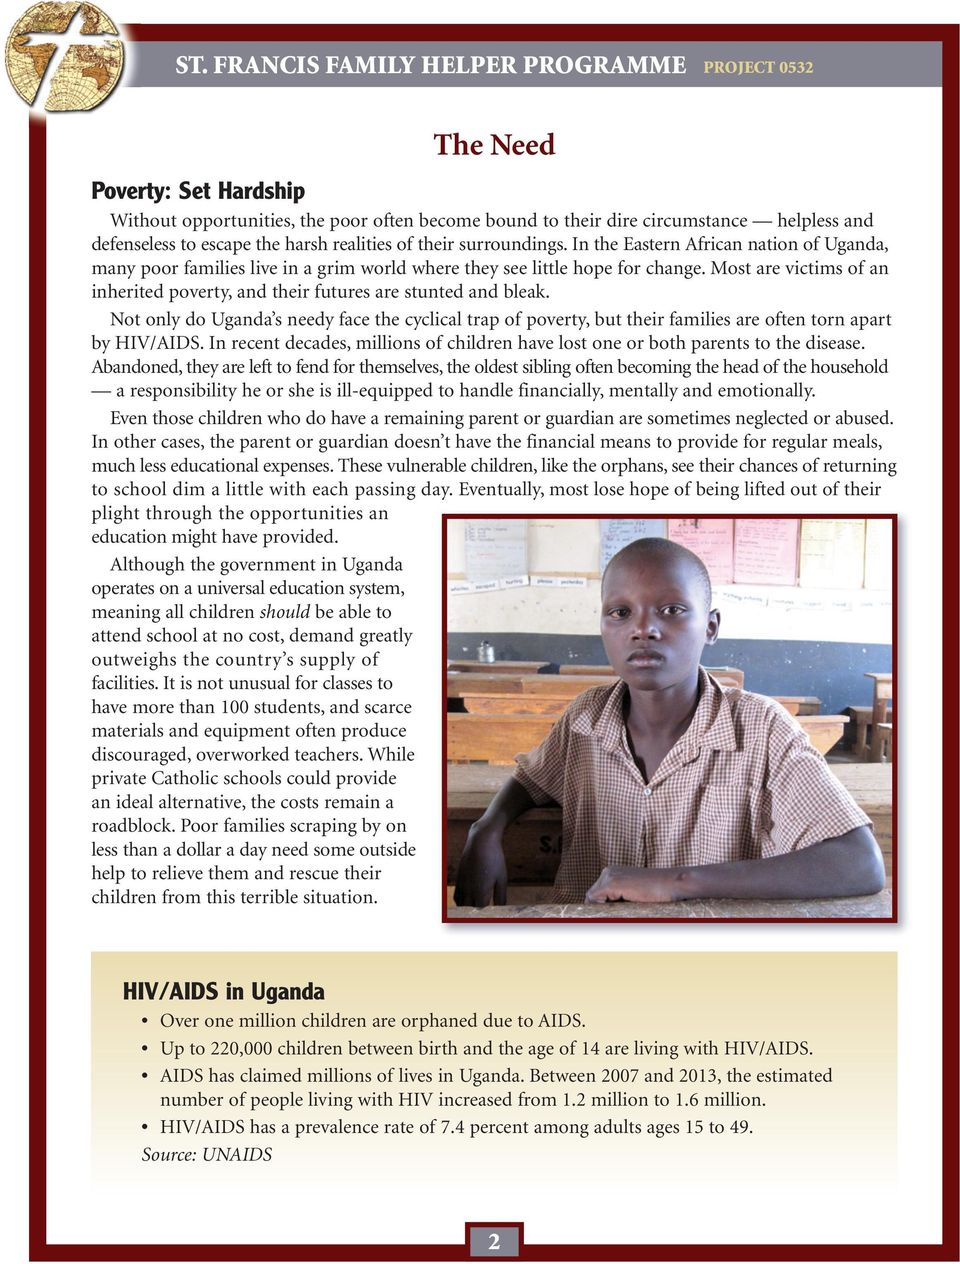 Most are victims of an inherited poverty, and their futures are stunted and bleak. Not only do Uganda s needy face the cyclical trap of poverty, but their families are often torn apart by HIV/AIDS.